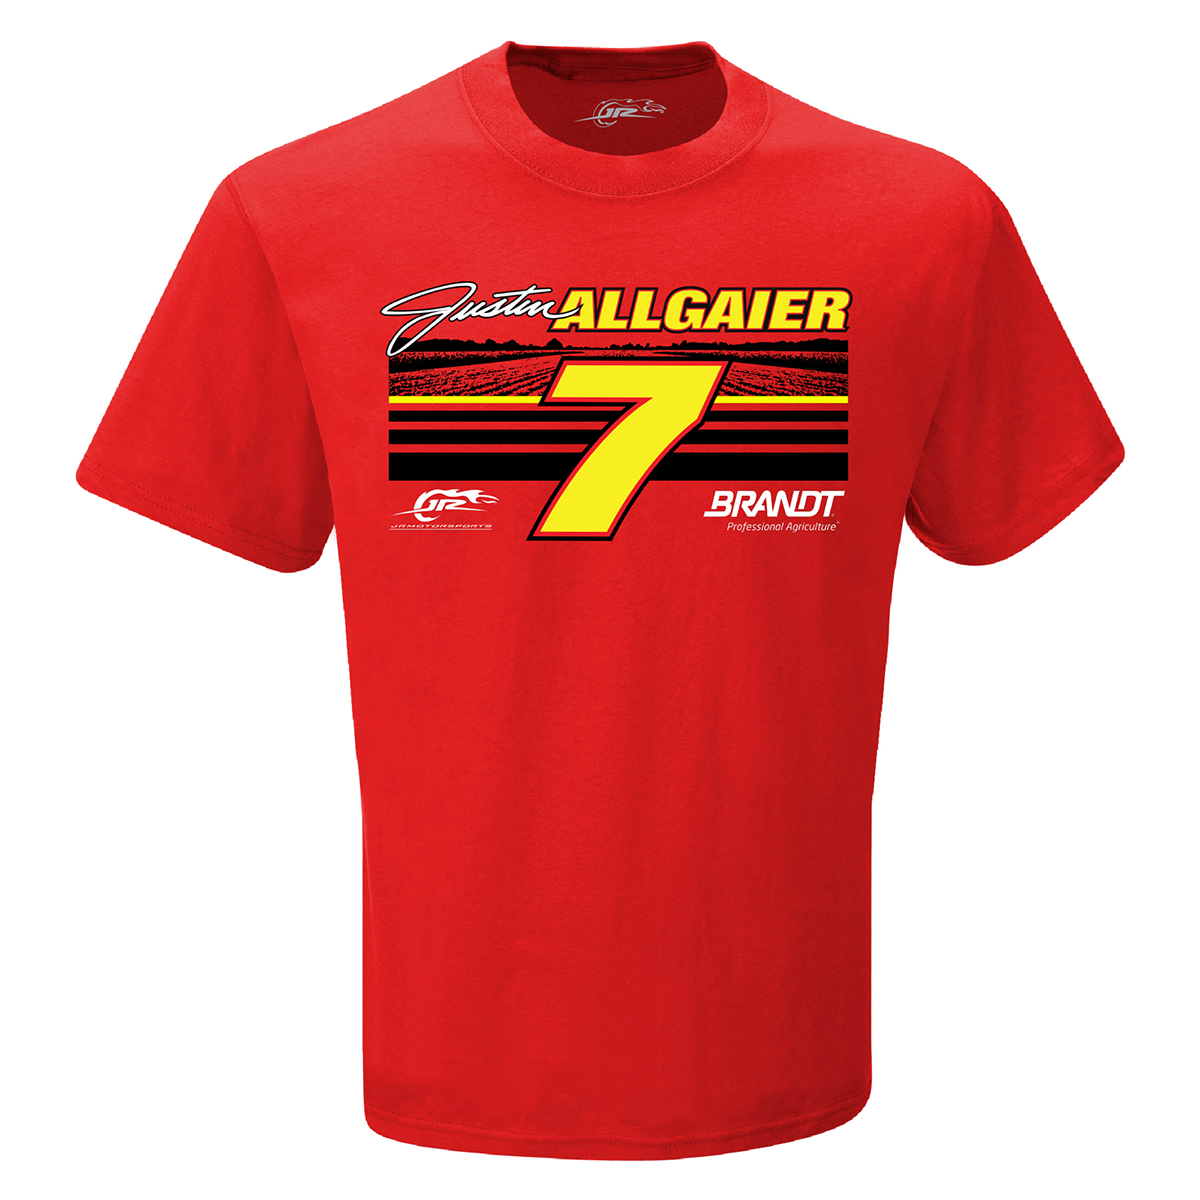 #7 NASCAR Justin Allgaier Professional Agriculture Red T-shirt